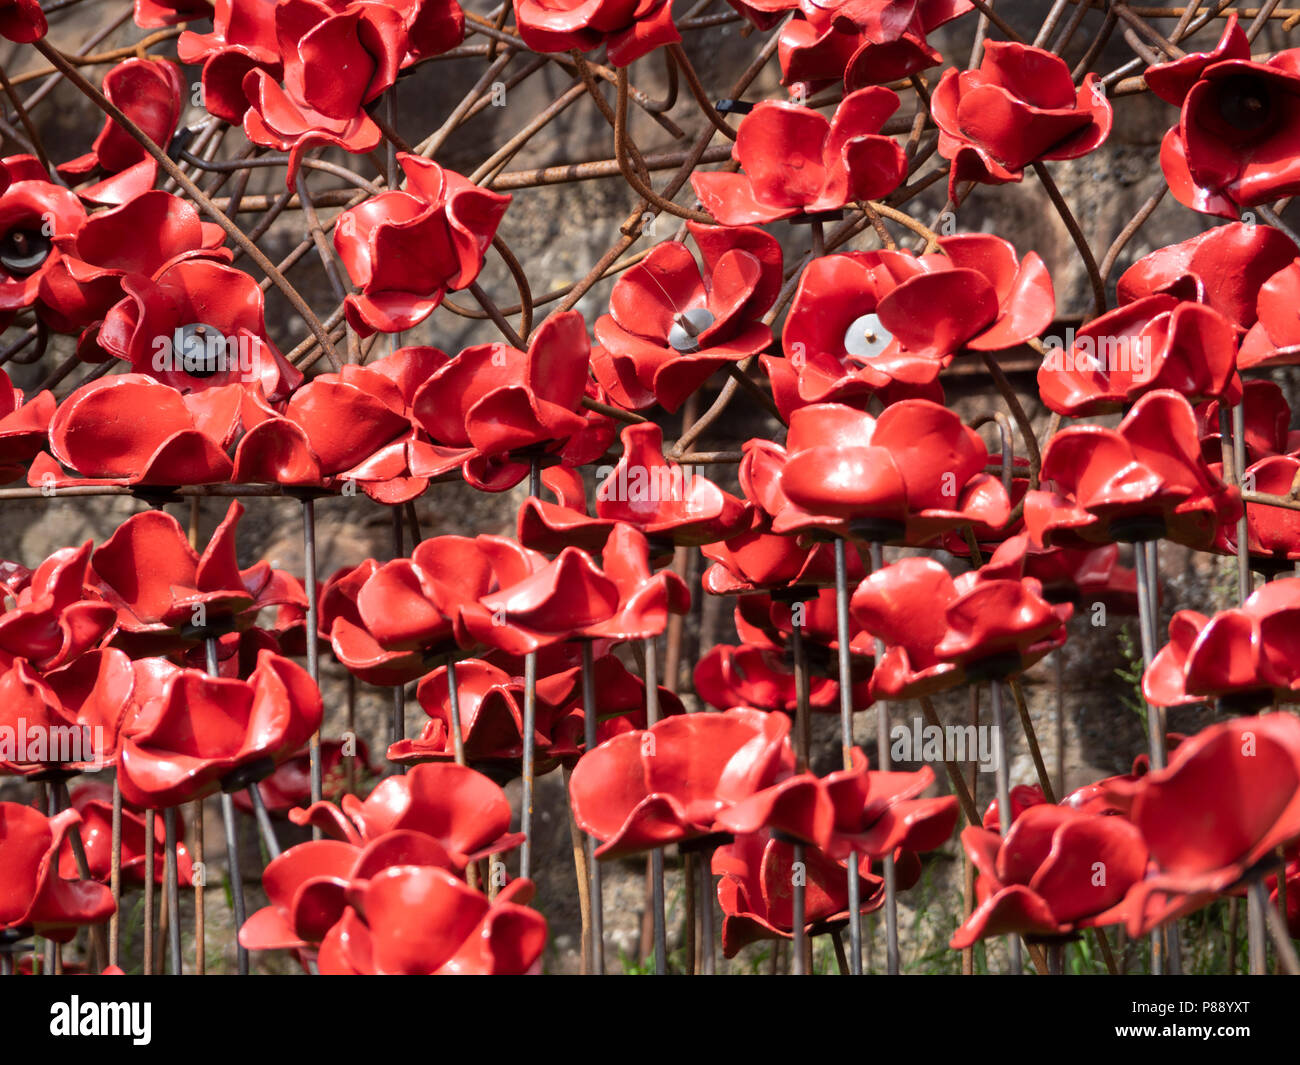 Carlisle Castle, Cumbria, UK:Weeping Window commemorative art installation, 100 years since WW1. 888,246 ceramic art poppies mark the number of lives  - Stock Image